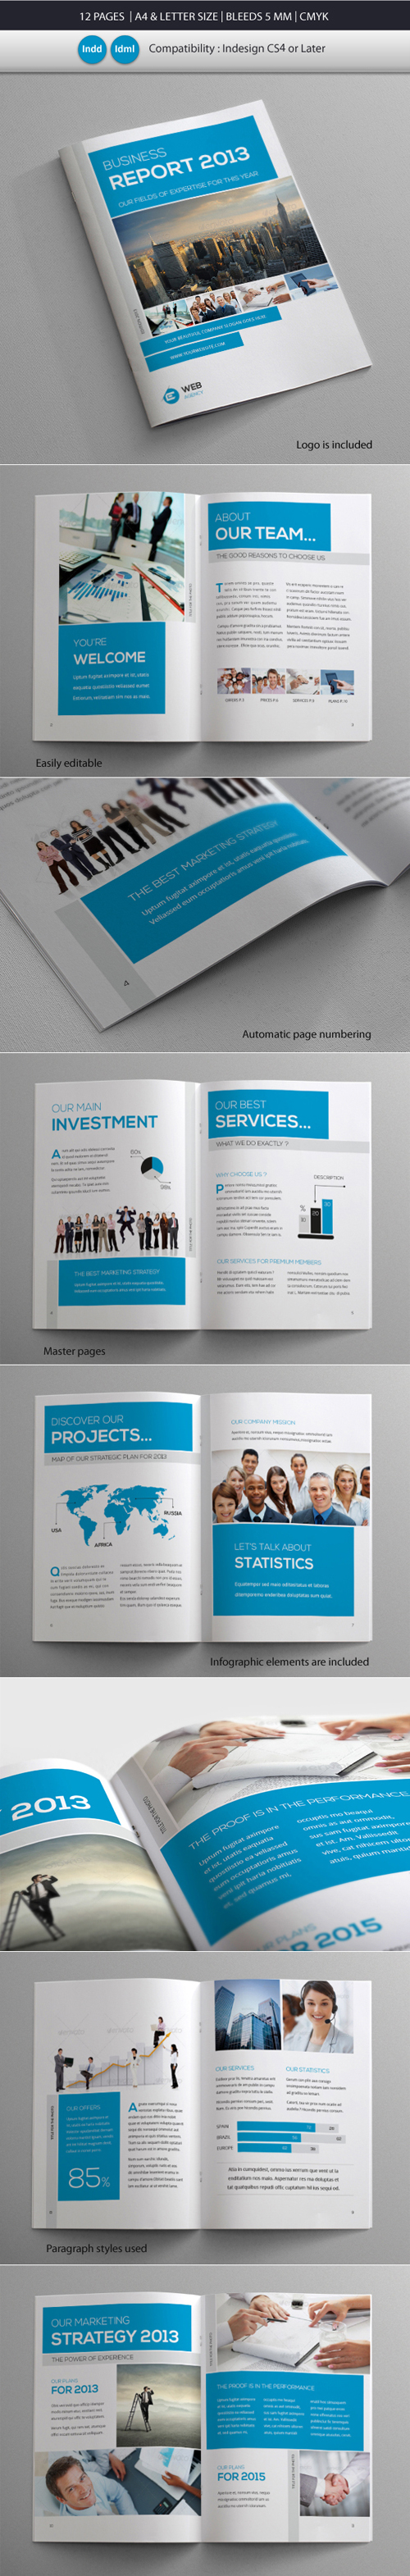 Corporate Business report